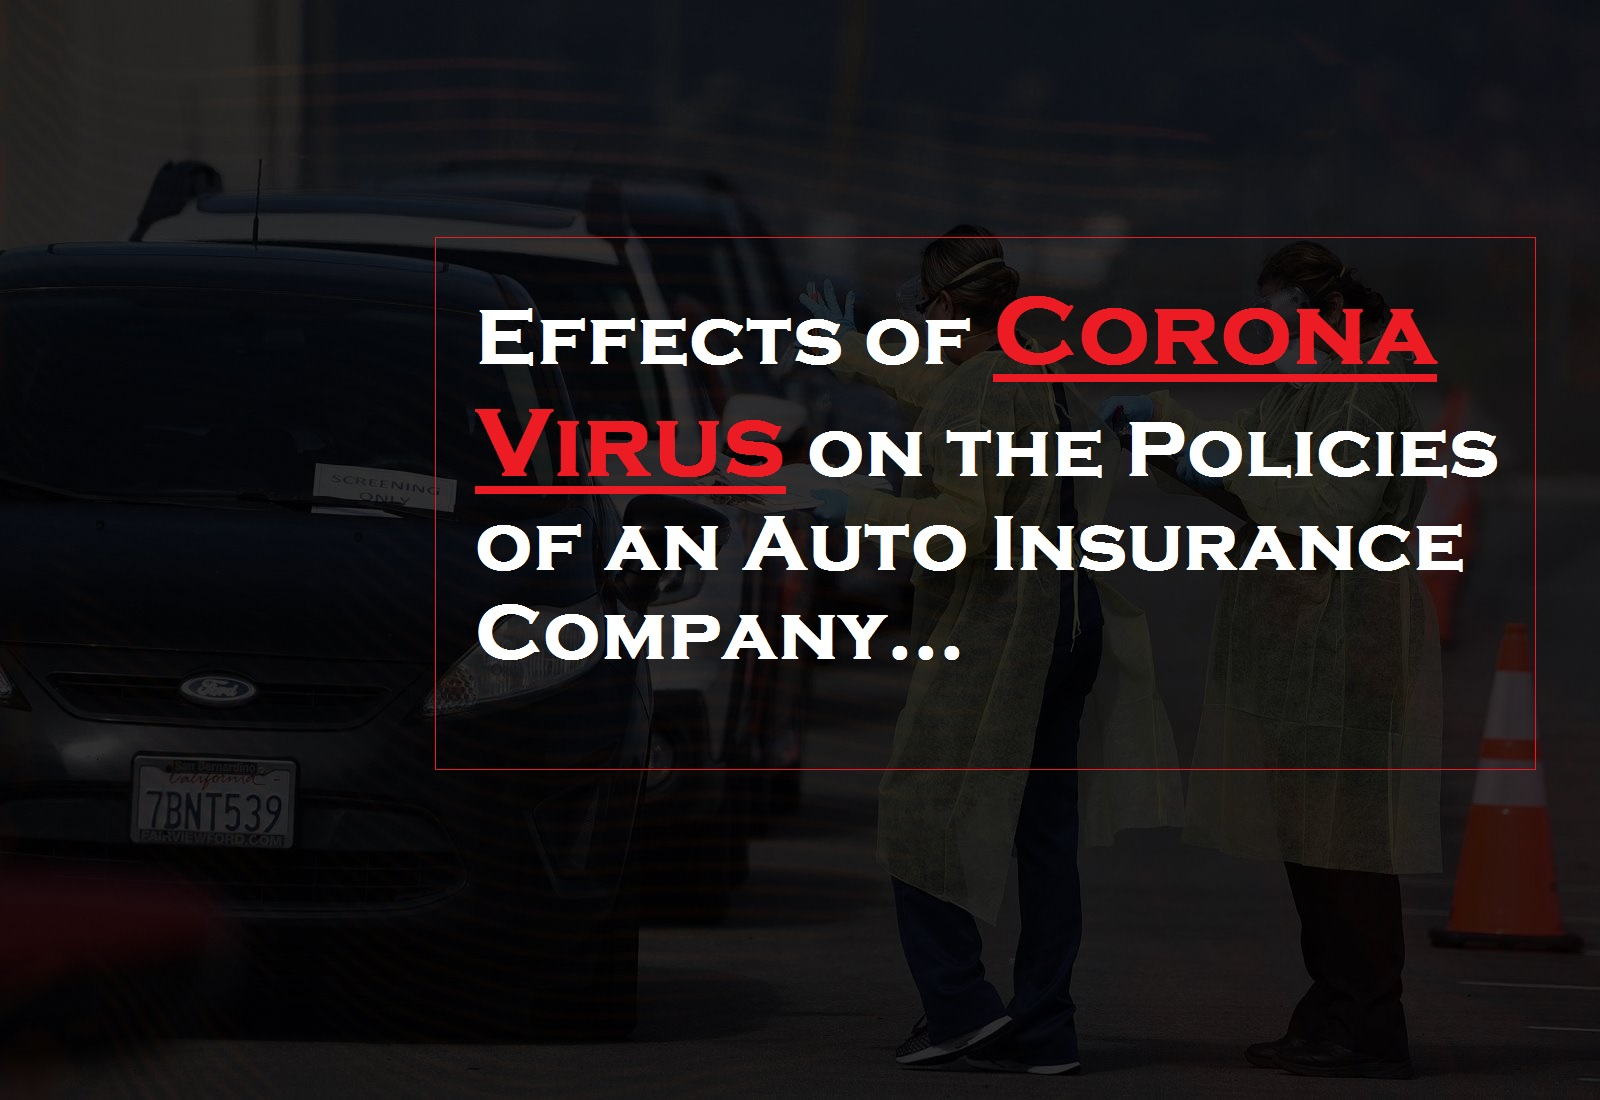 Effects of Corona virus on the Policies of an Auto Insurance Company